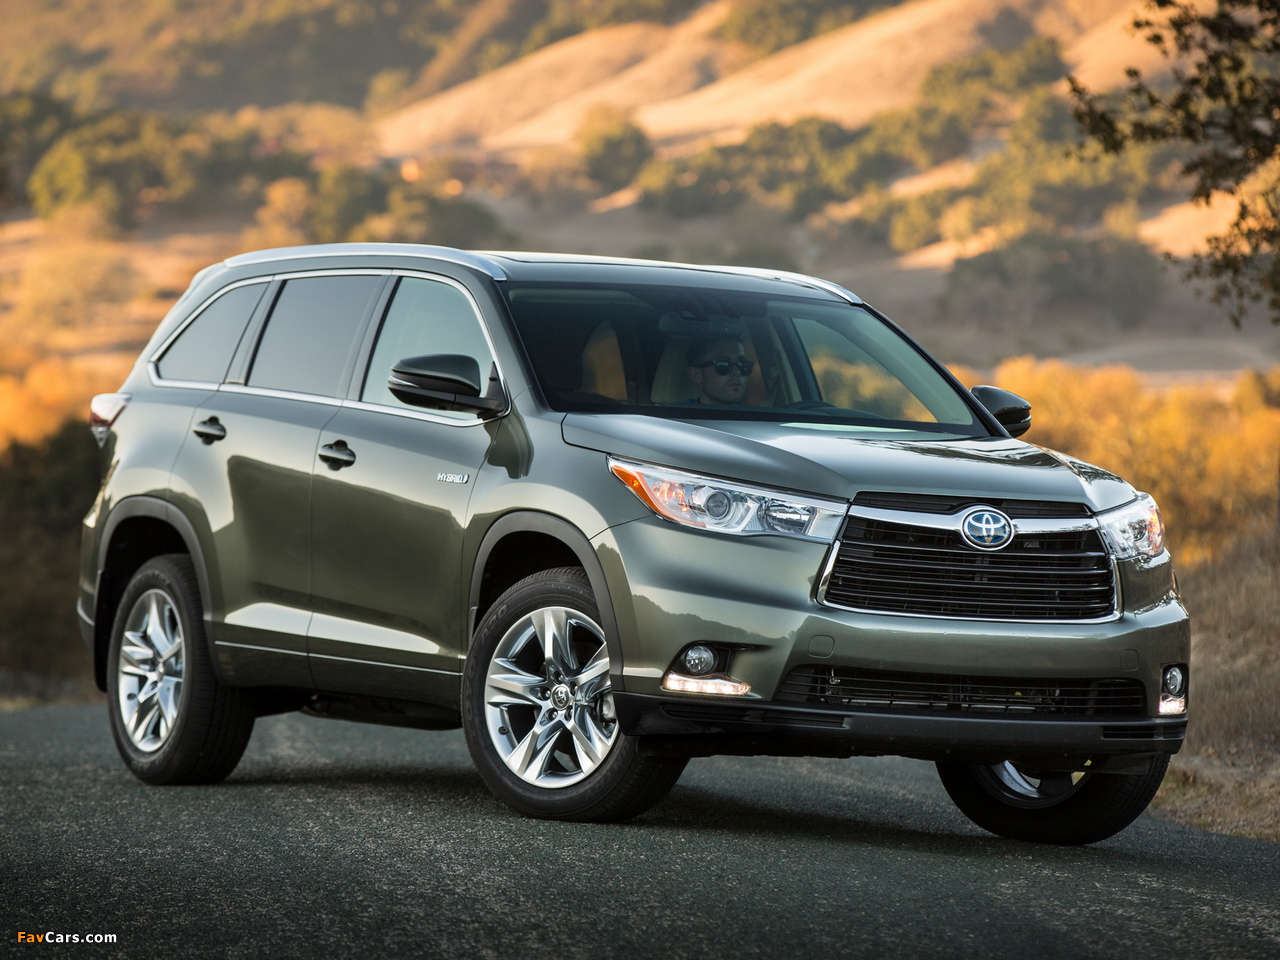 Toyota Highlander Hybrid Overview & Generations - CarsDirect